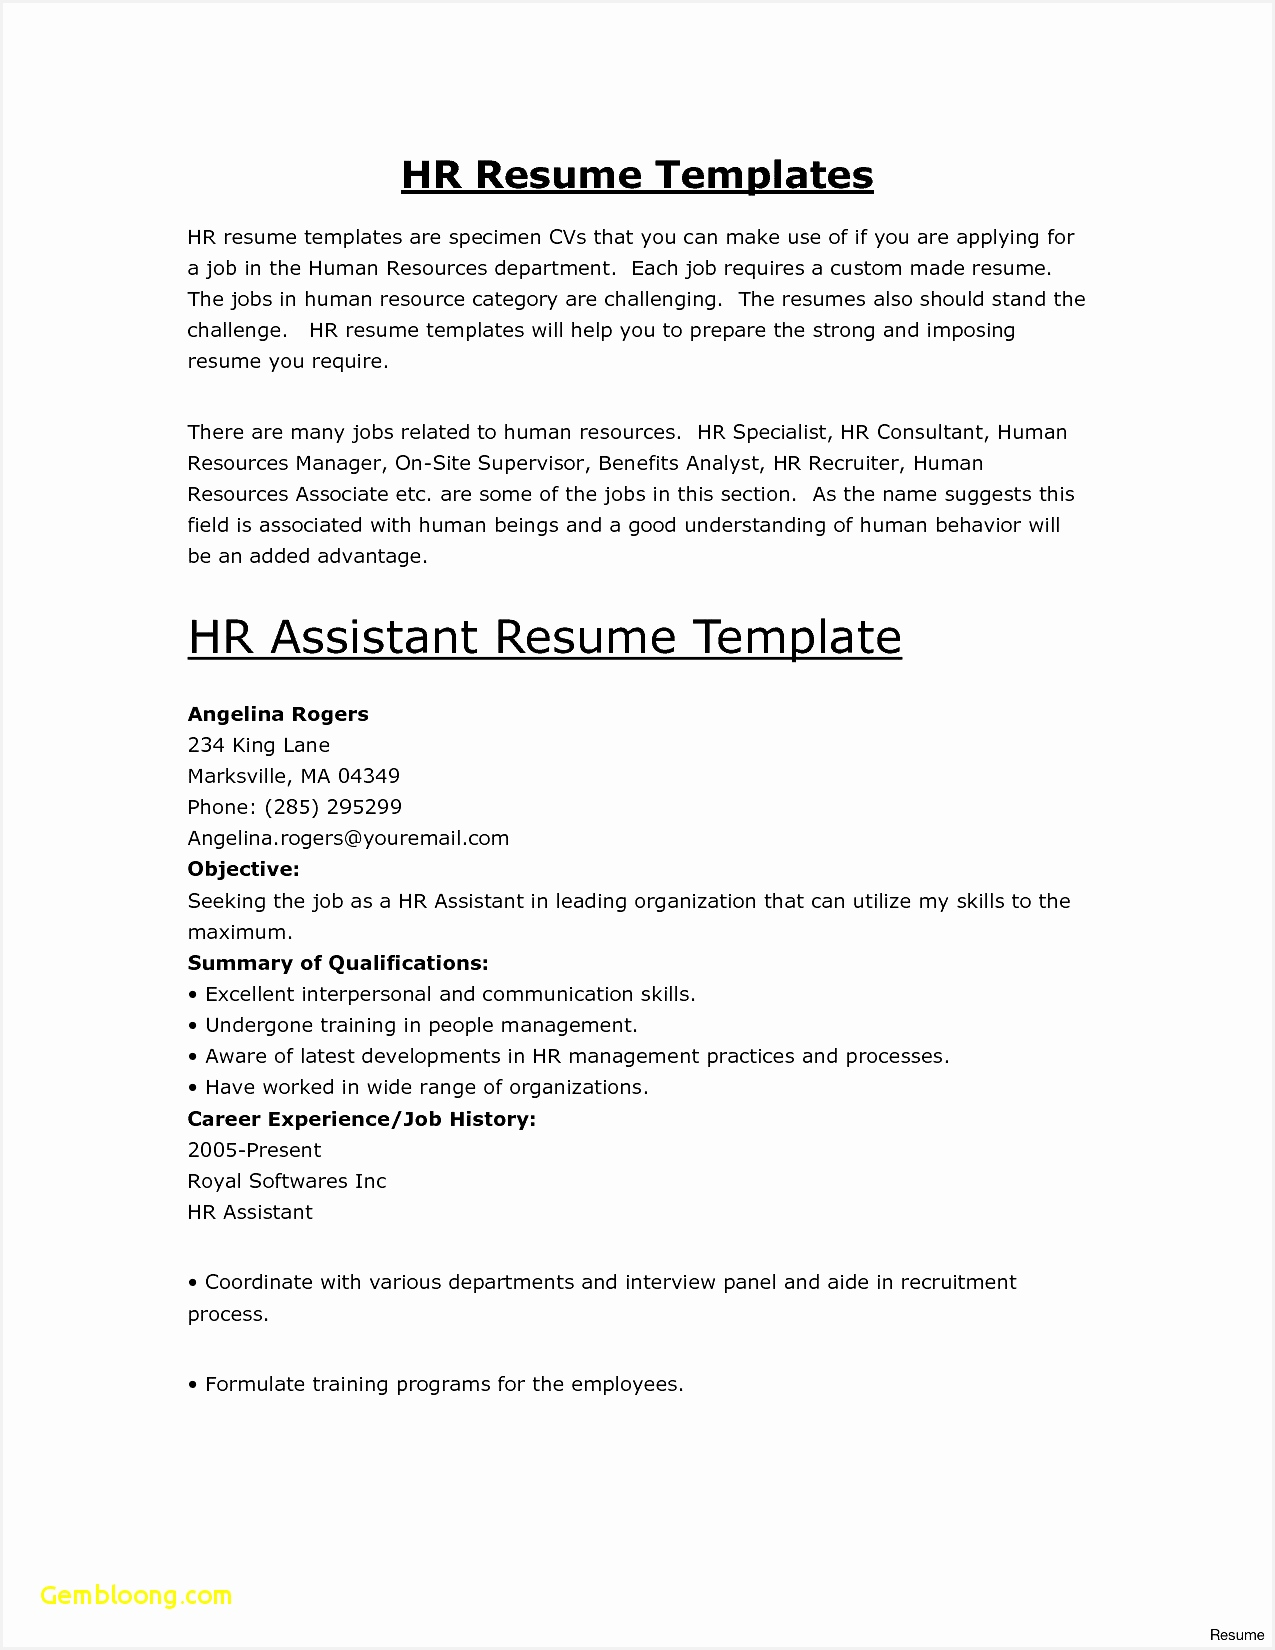 Free Resume Templates Word Document New Basic Resume Template Free Best Od Specialist Sample Resume16501275